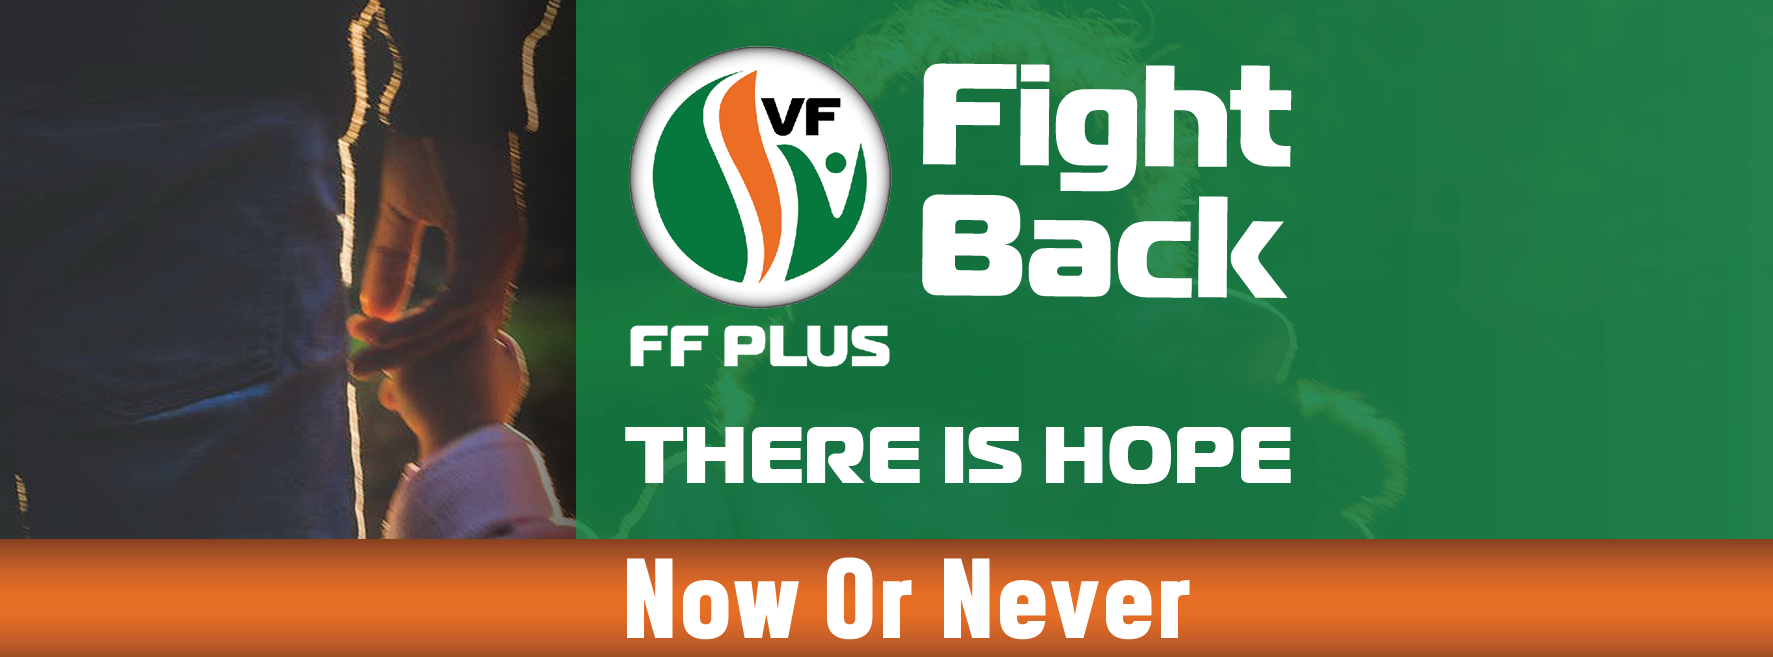 FF Plus Freedom Front Plus Fight Back Facebook 2